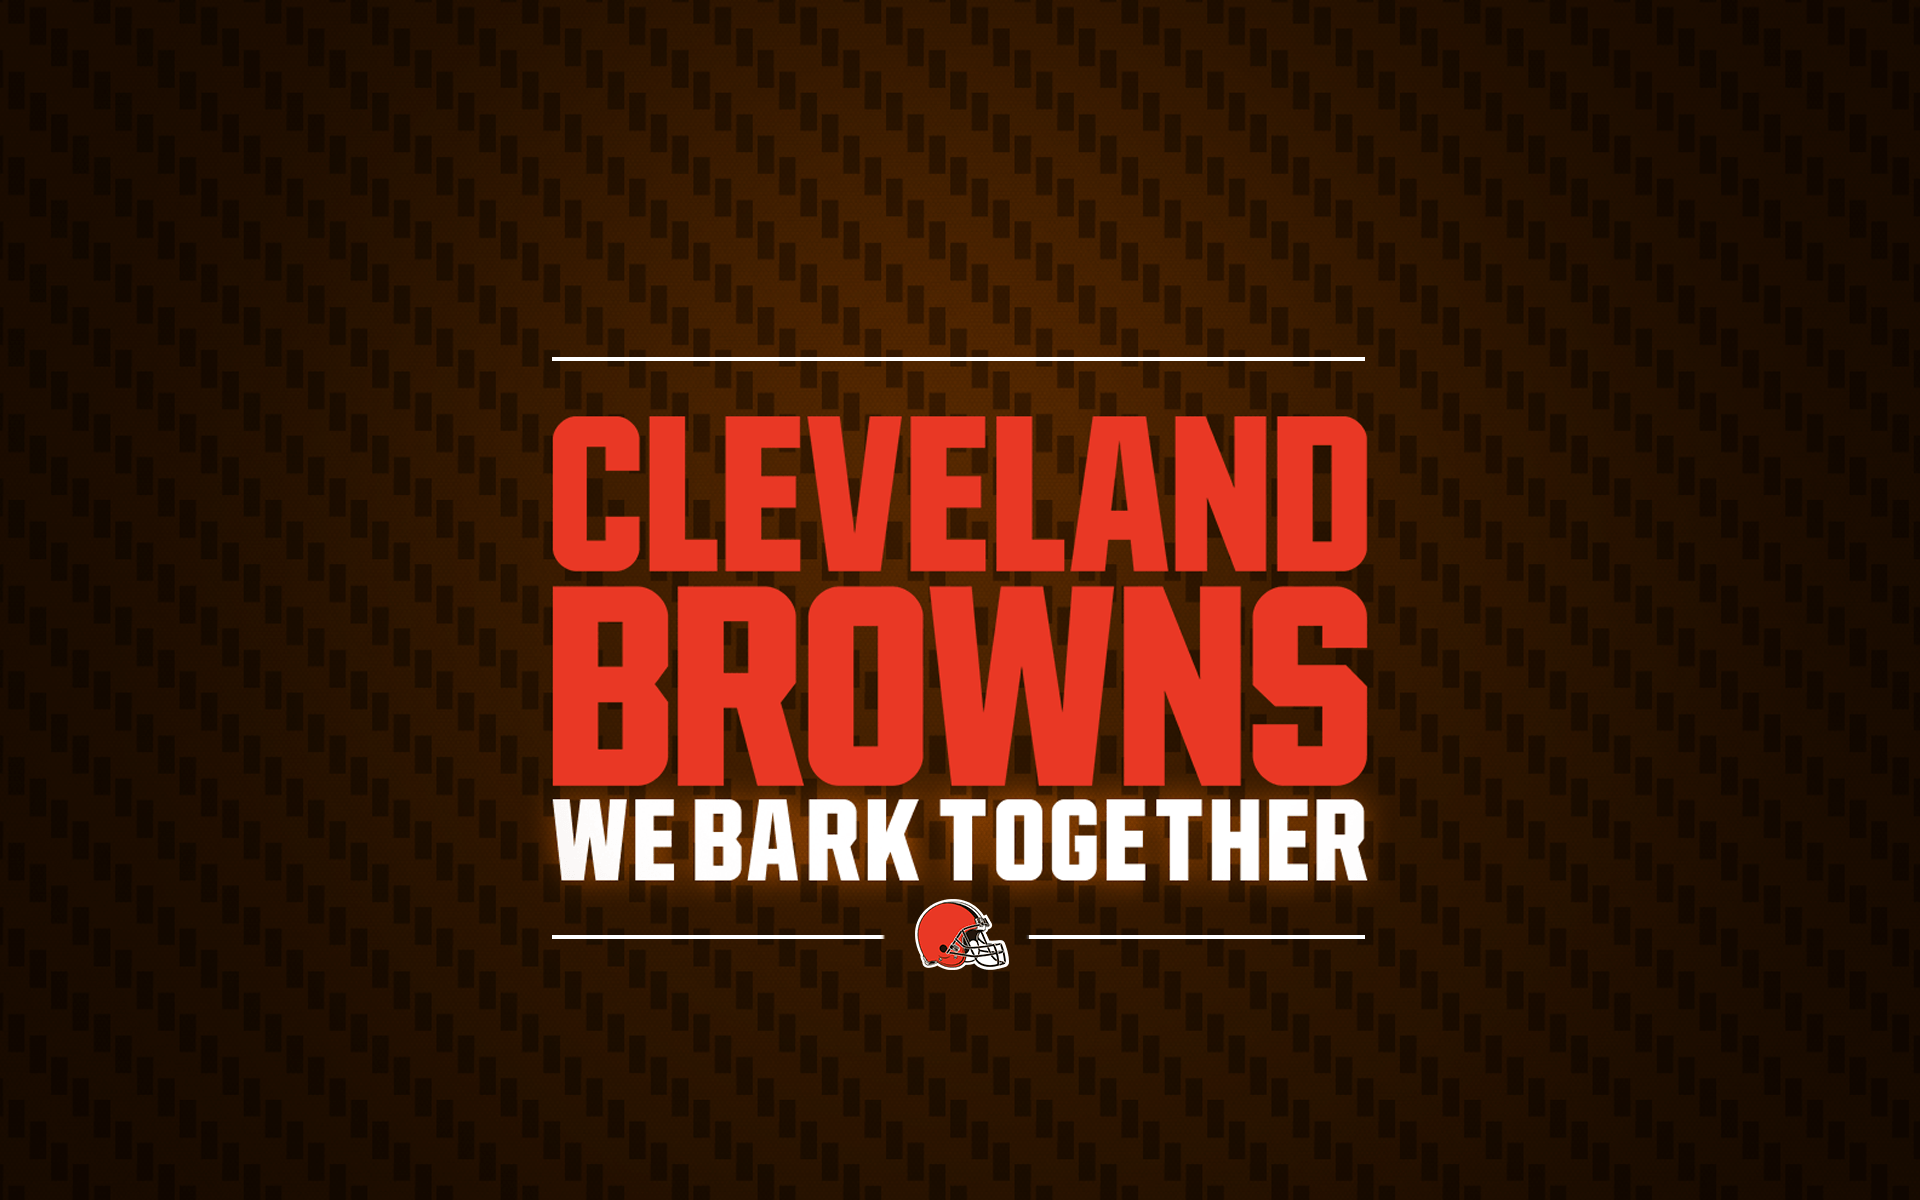 Cleveland Browns Wallpaper 1 - 1920 X 1200 | stmed.net